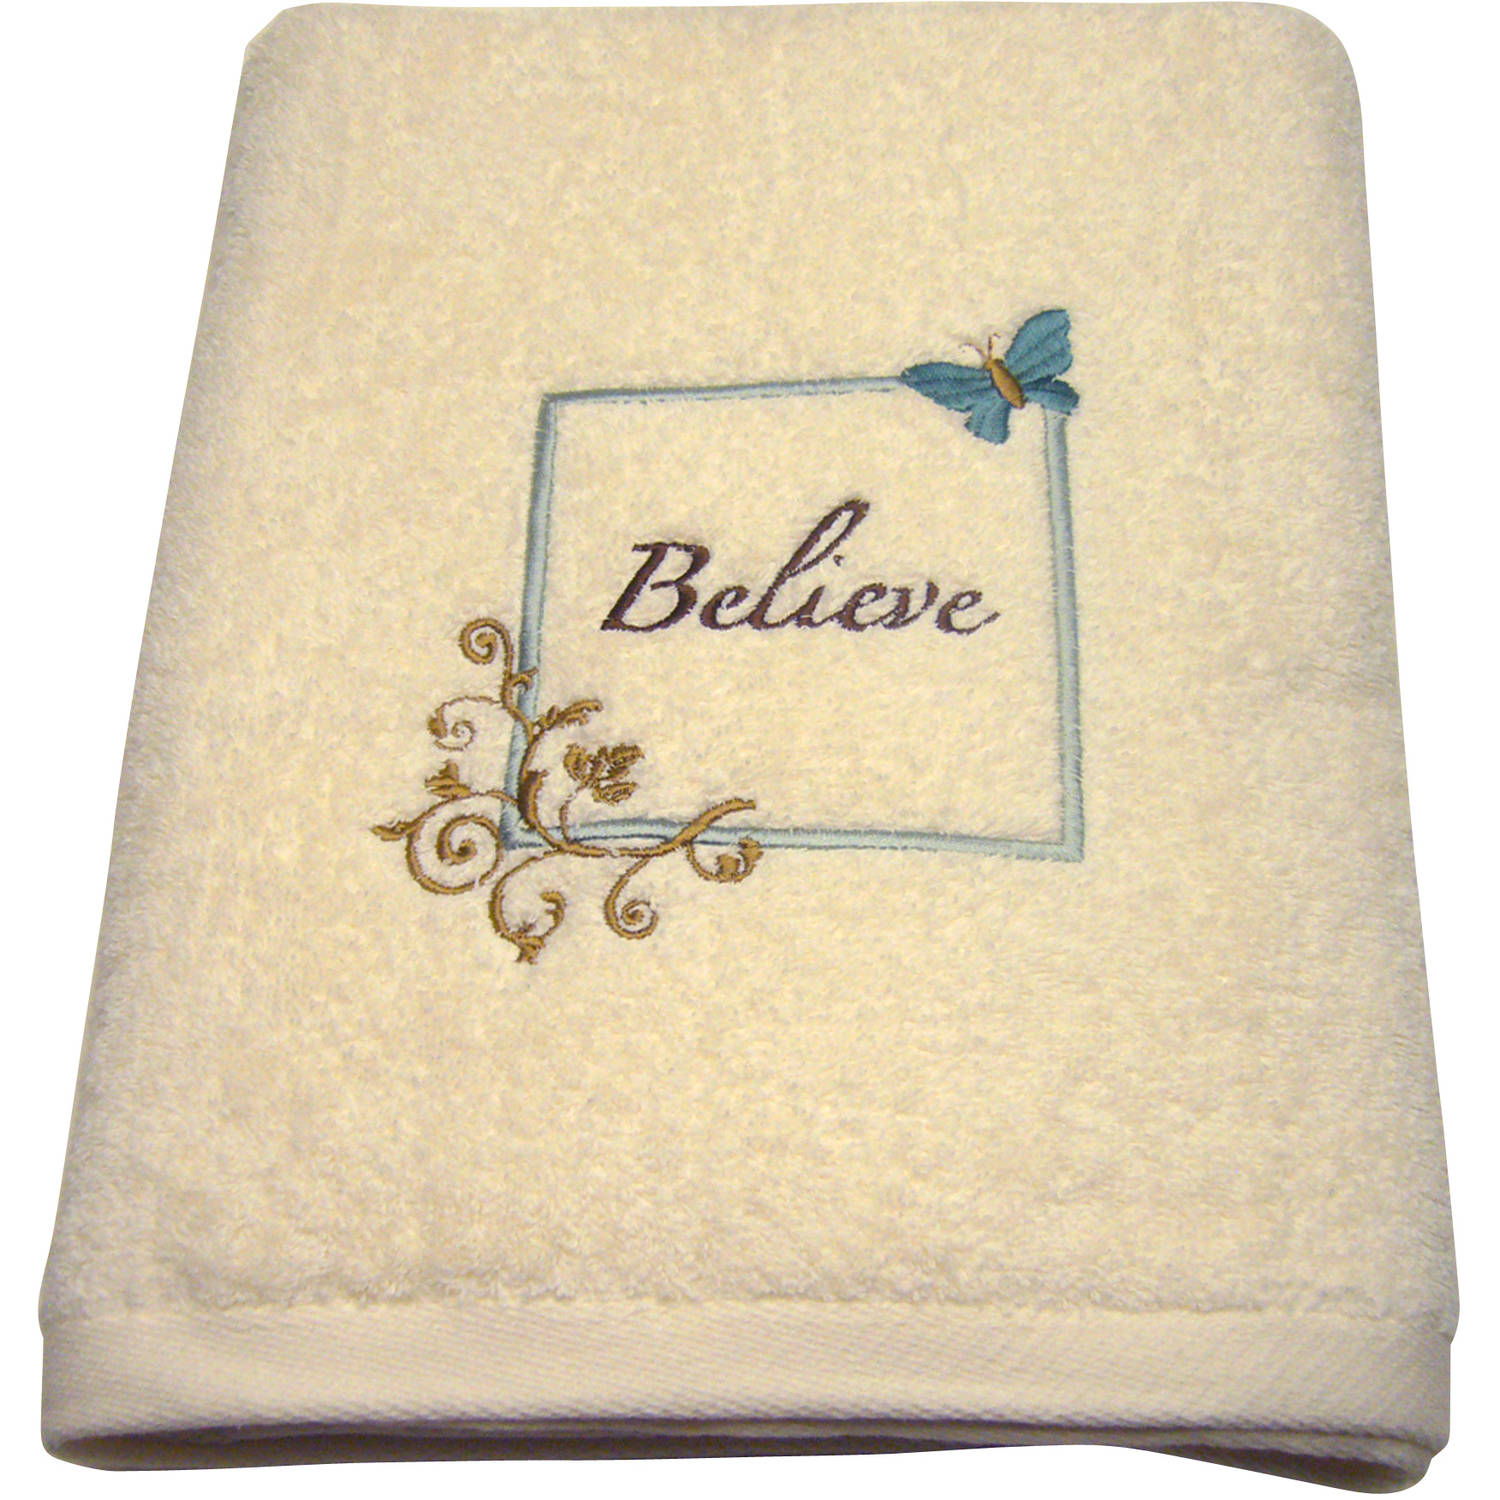 Mainstays Butterfly Blessing Decorative Bath Towel Collection